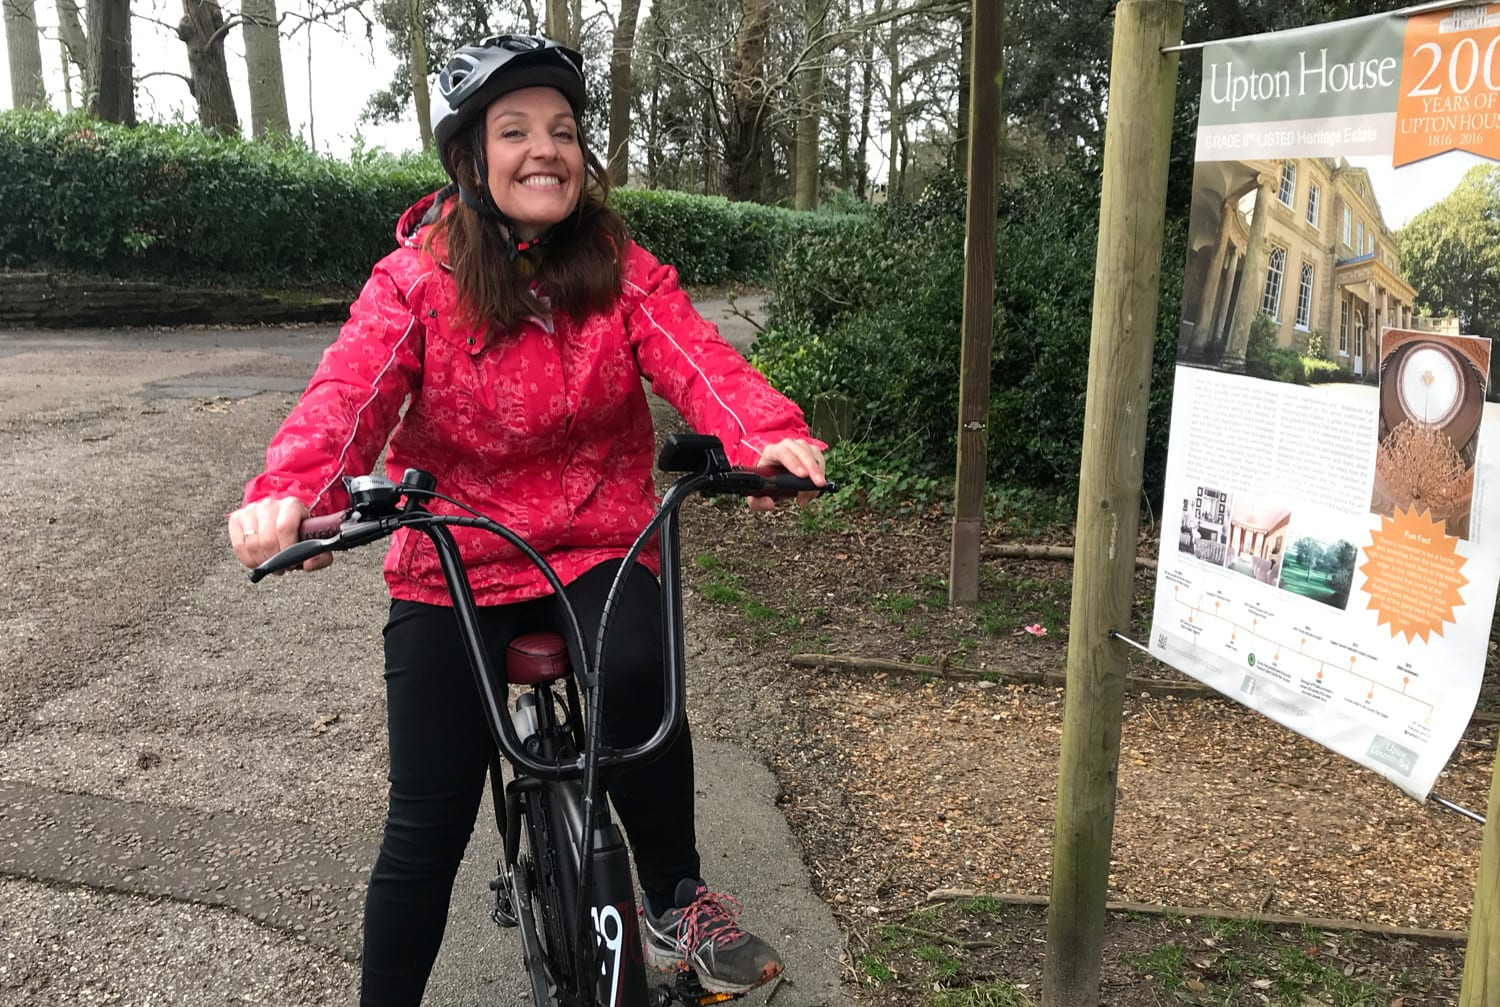 ebike mystery tour upton country park